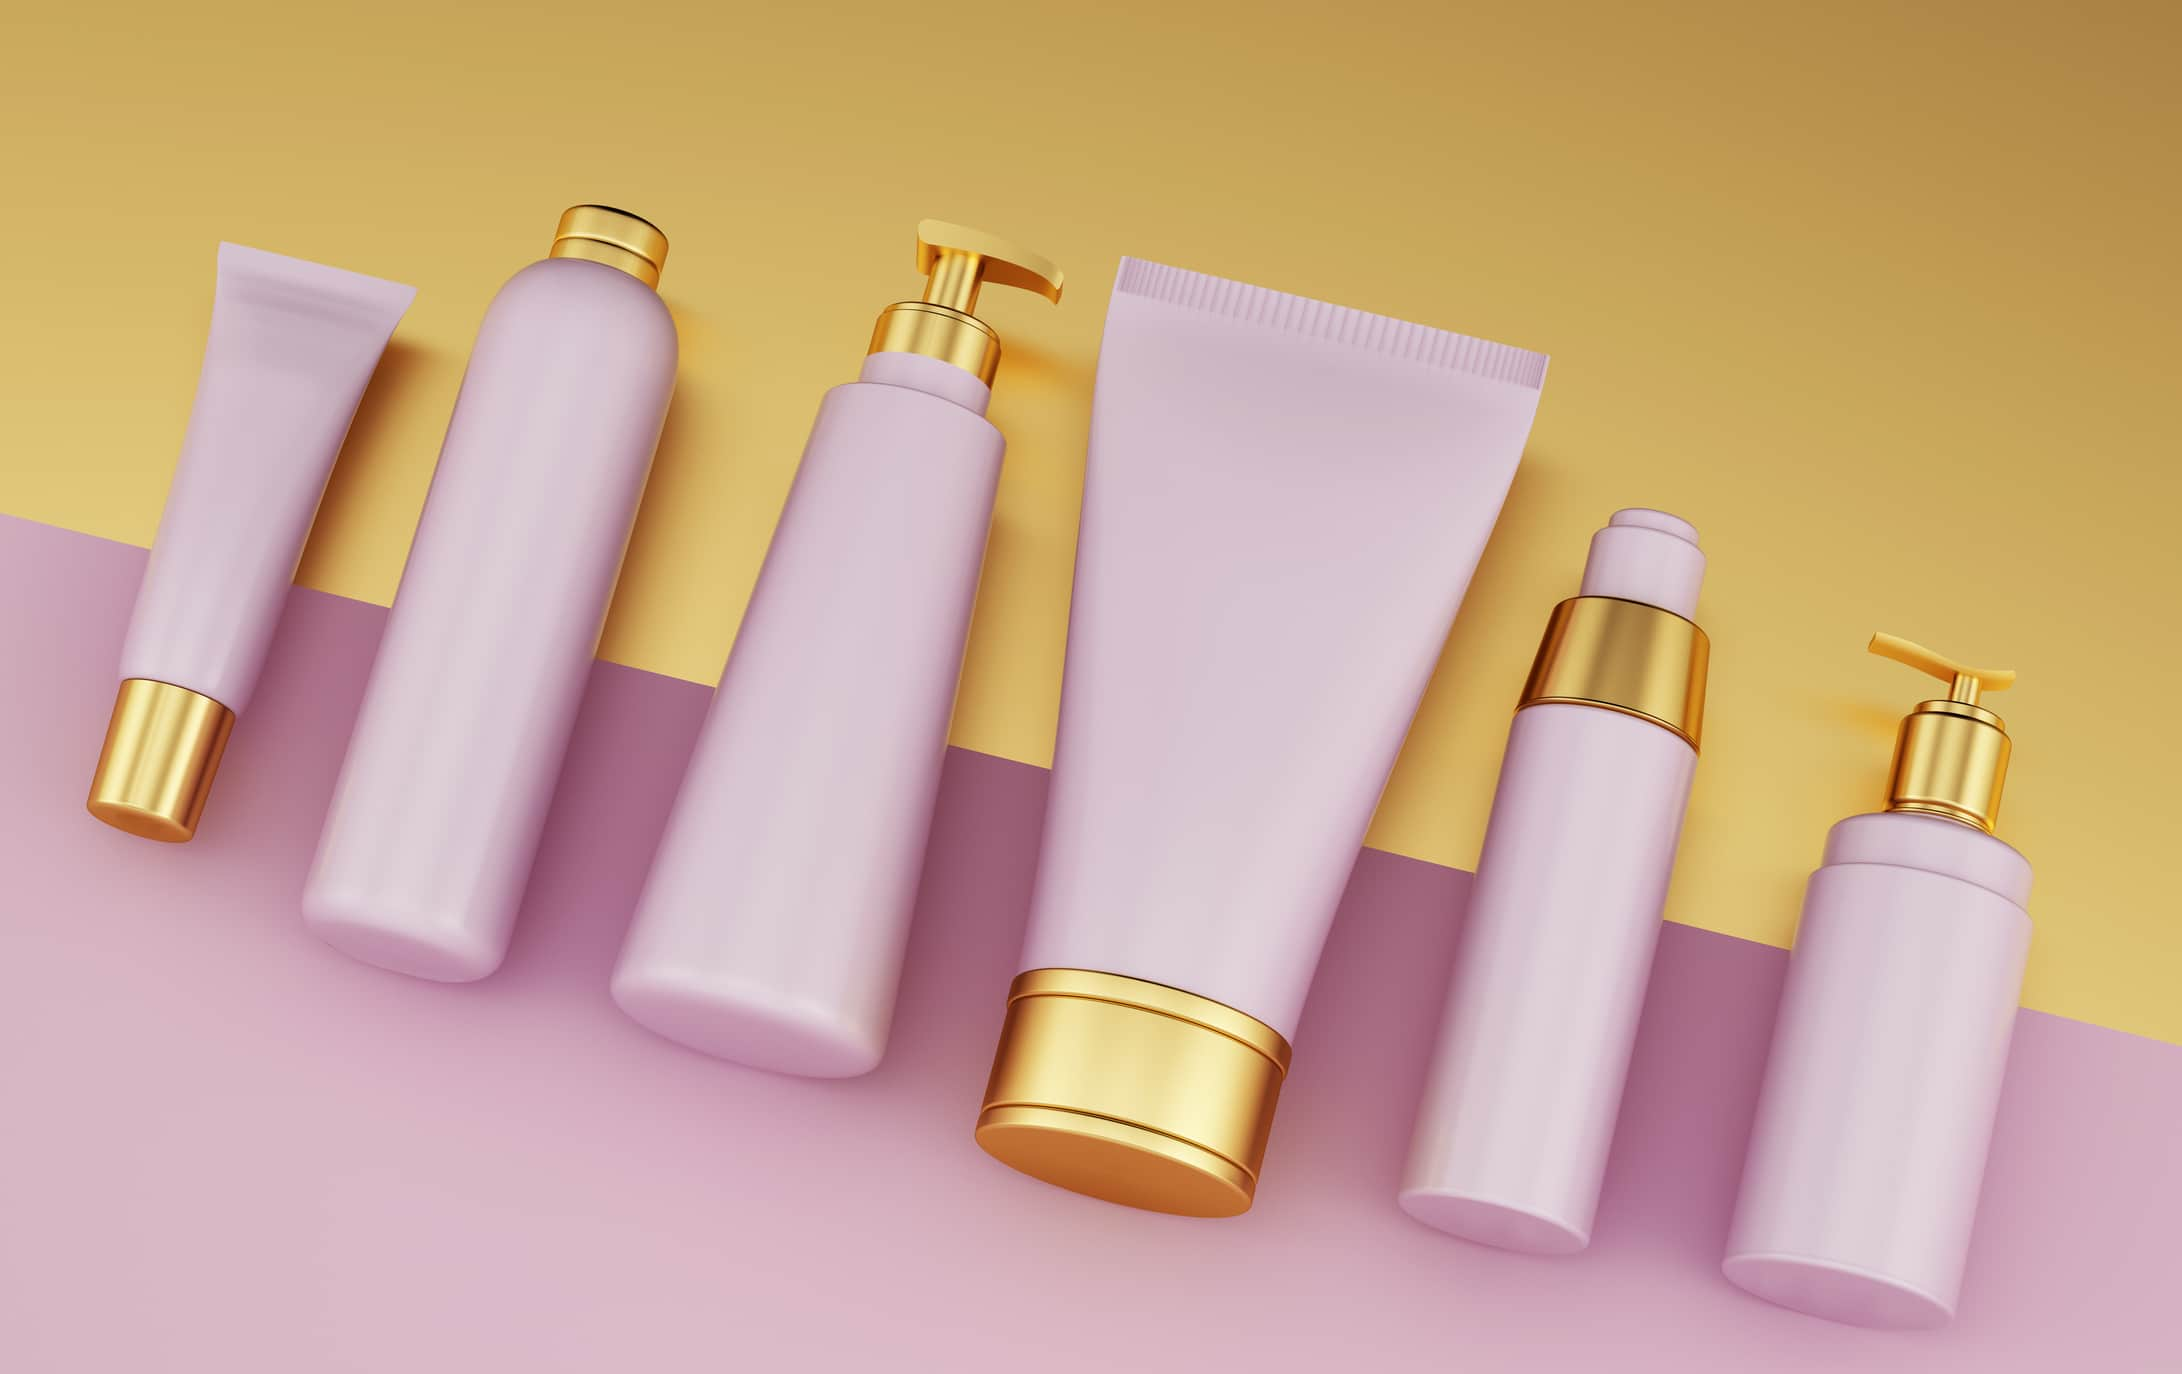 Many personal care products contain parabens and sulphates